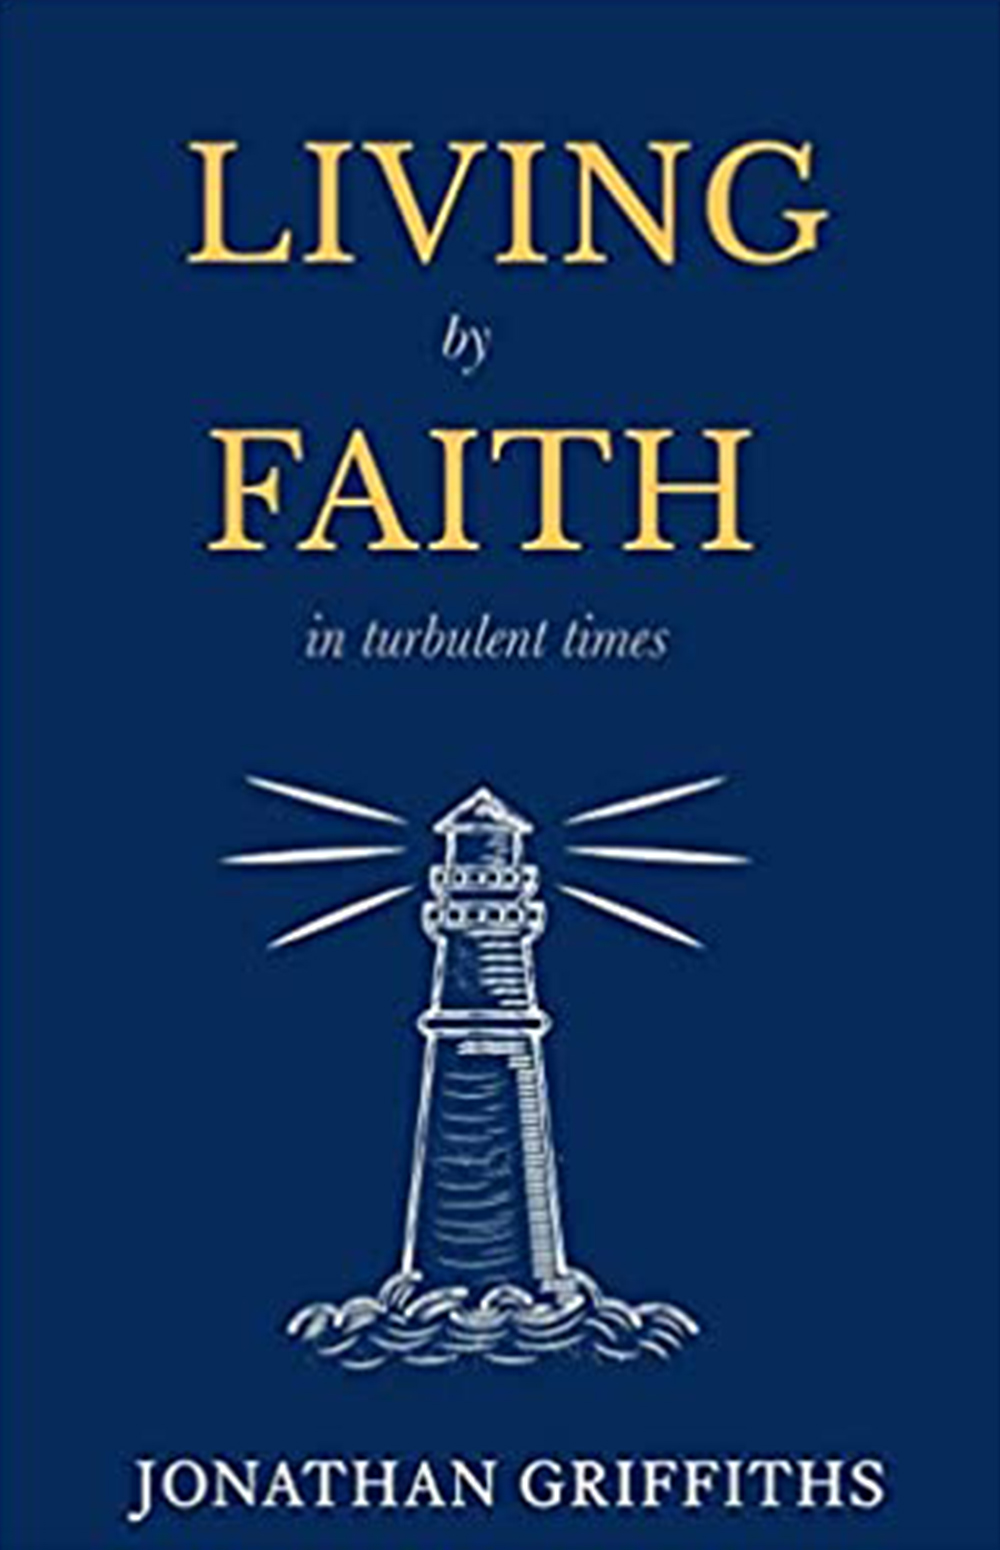 """Living by Faith in Turbulent Times"" by Jonathan Griffiths"